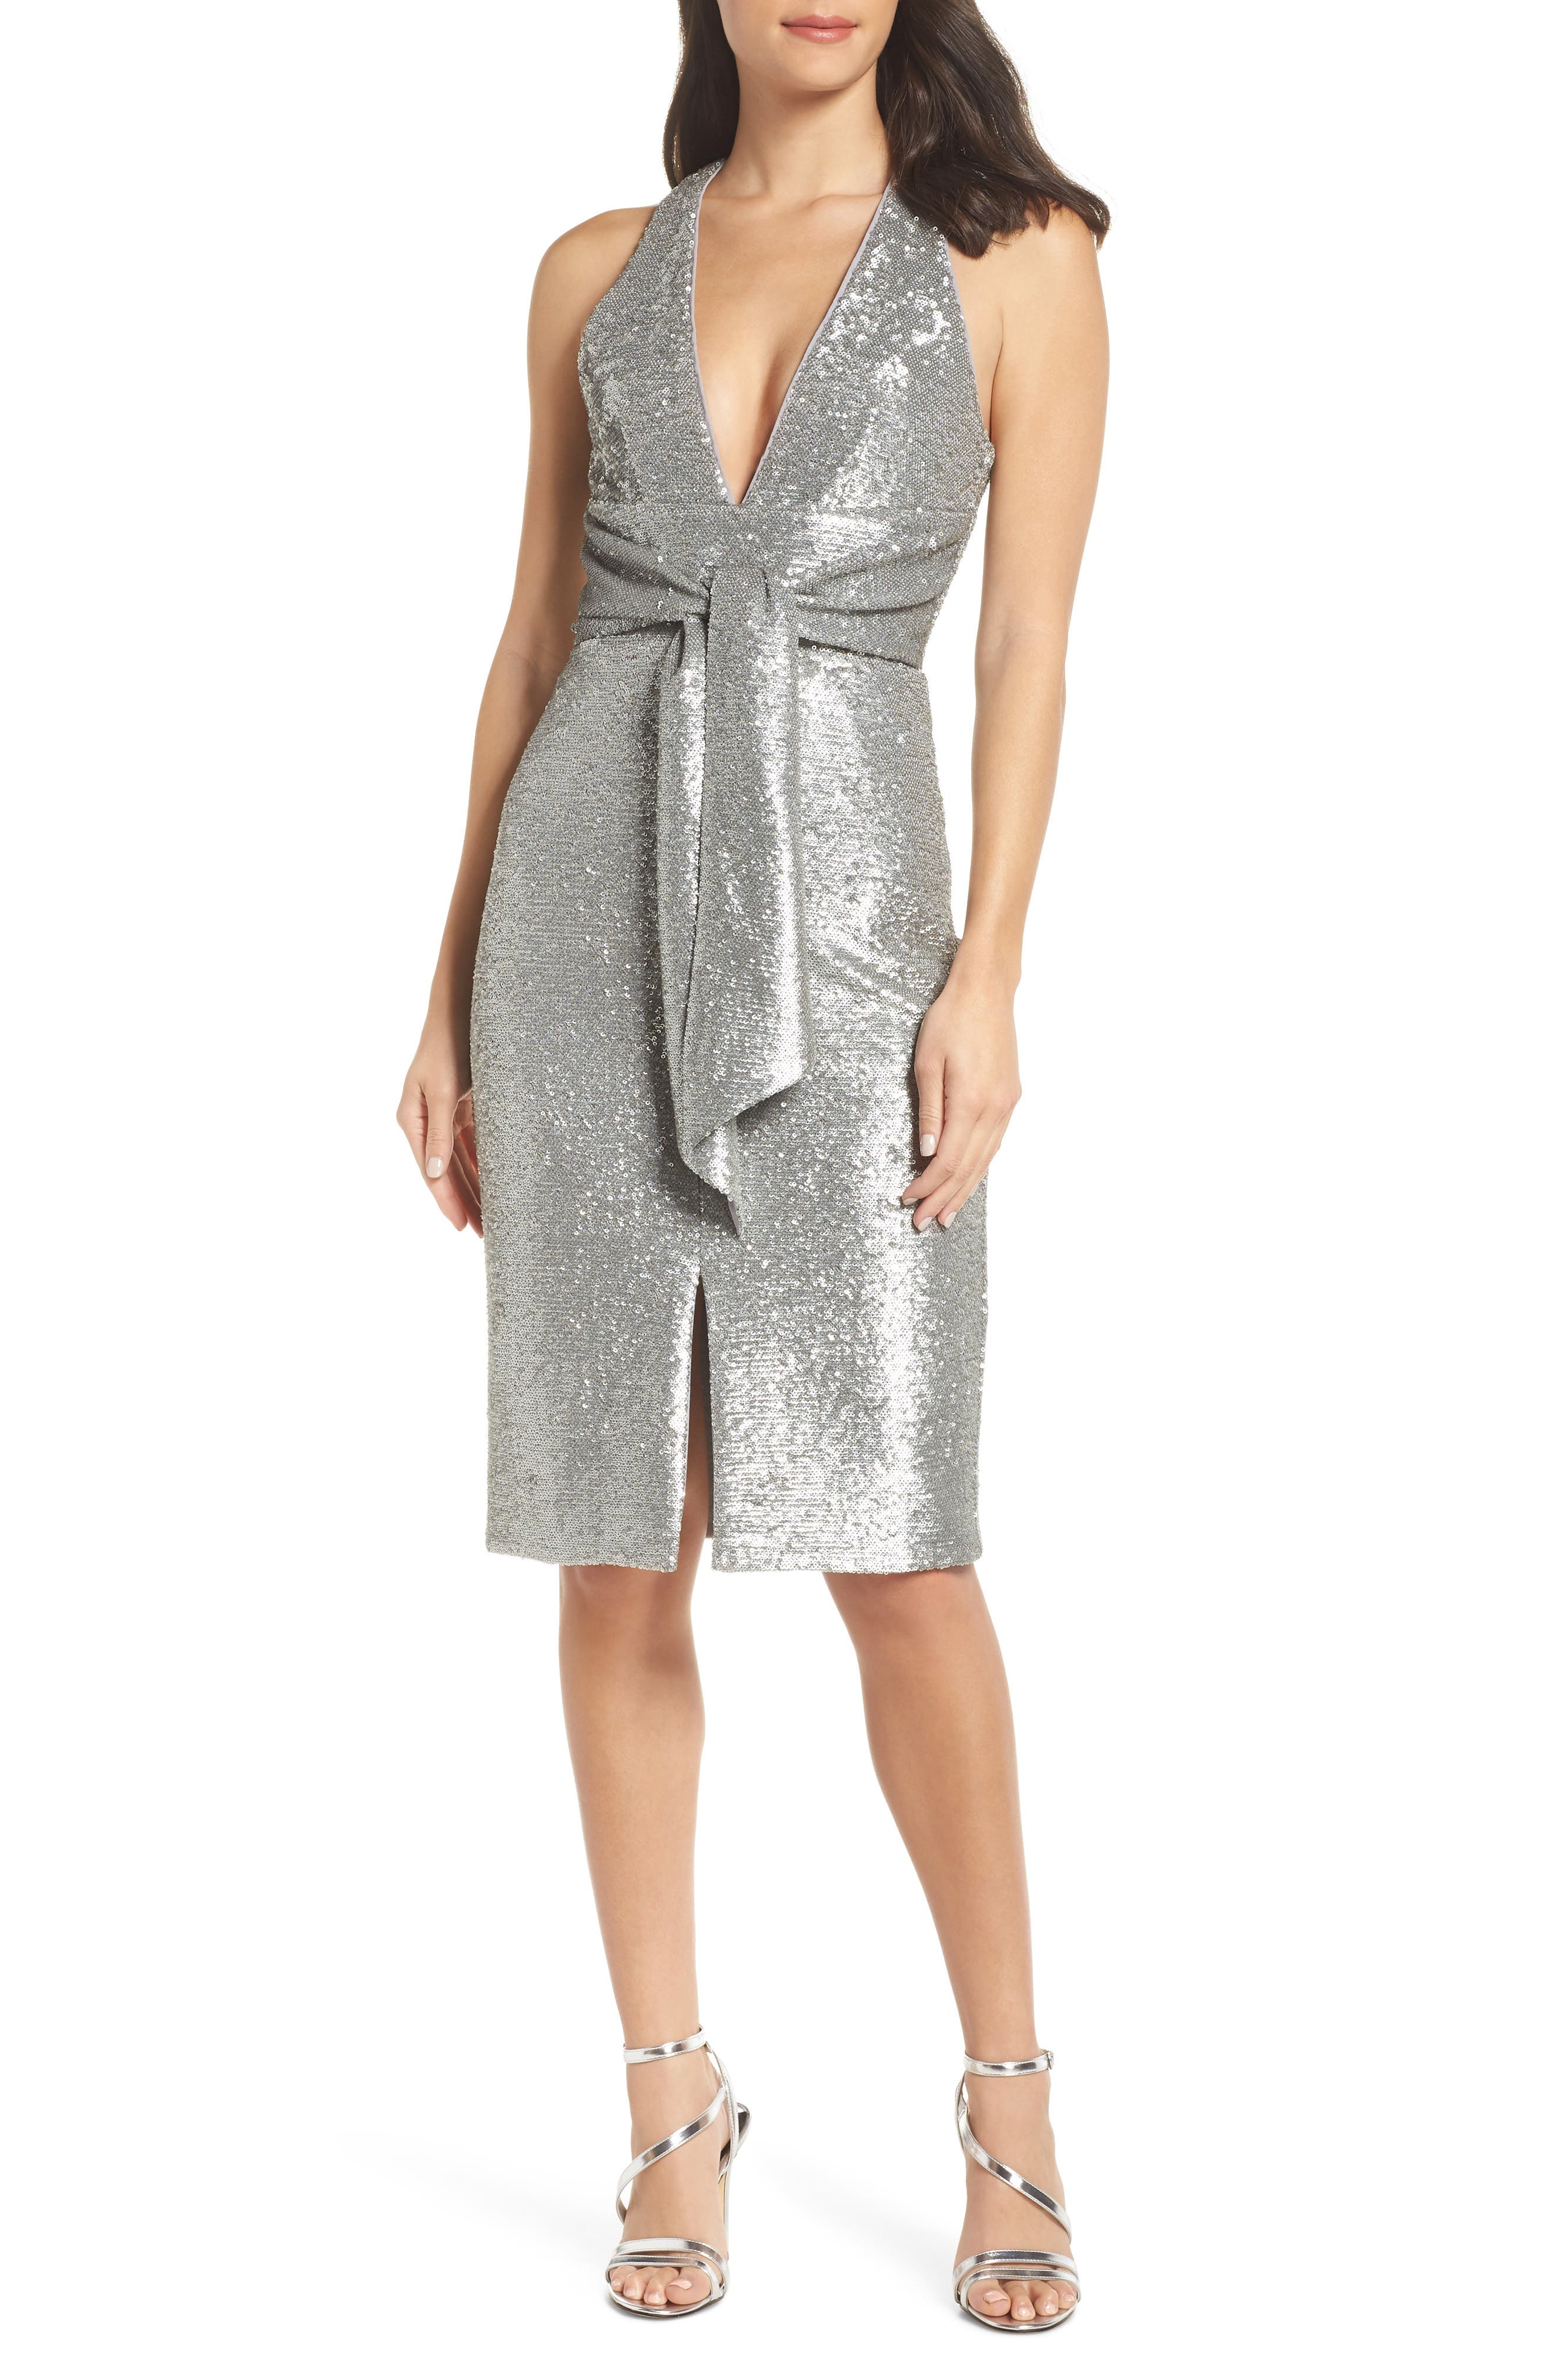 HARLYN Plunge Neck Sequin Dress in Matte Silver